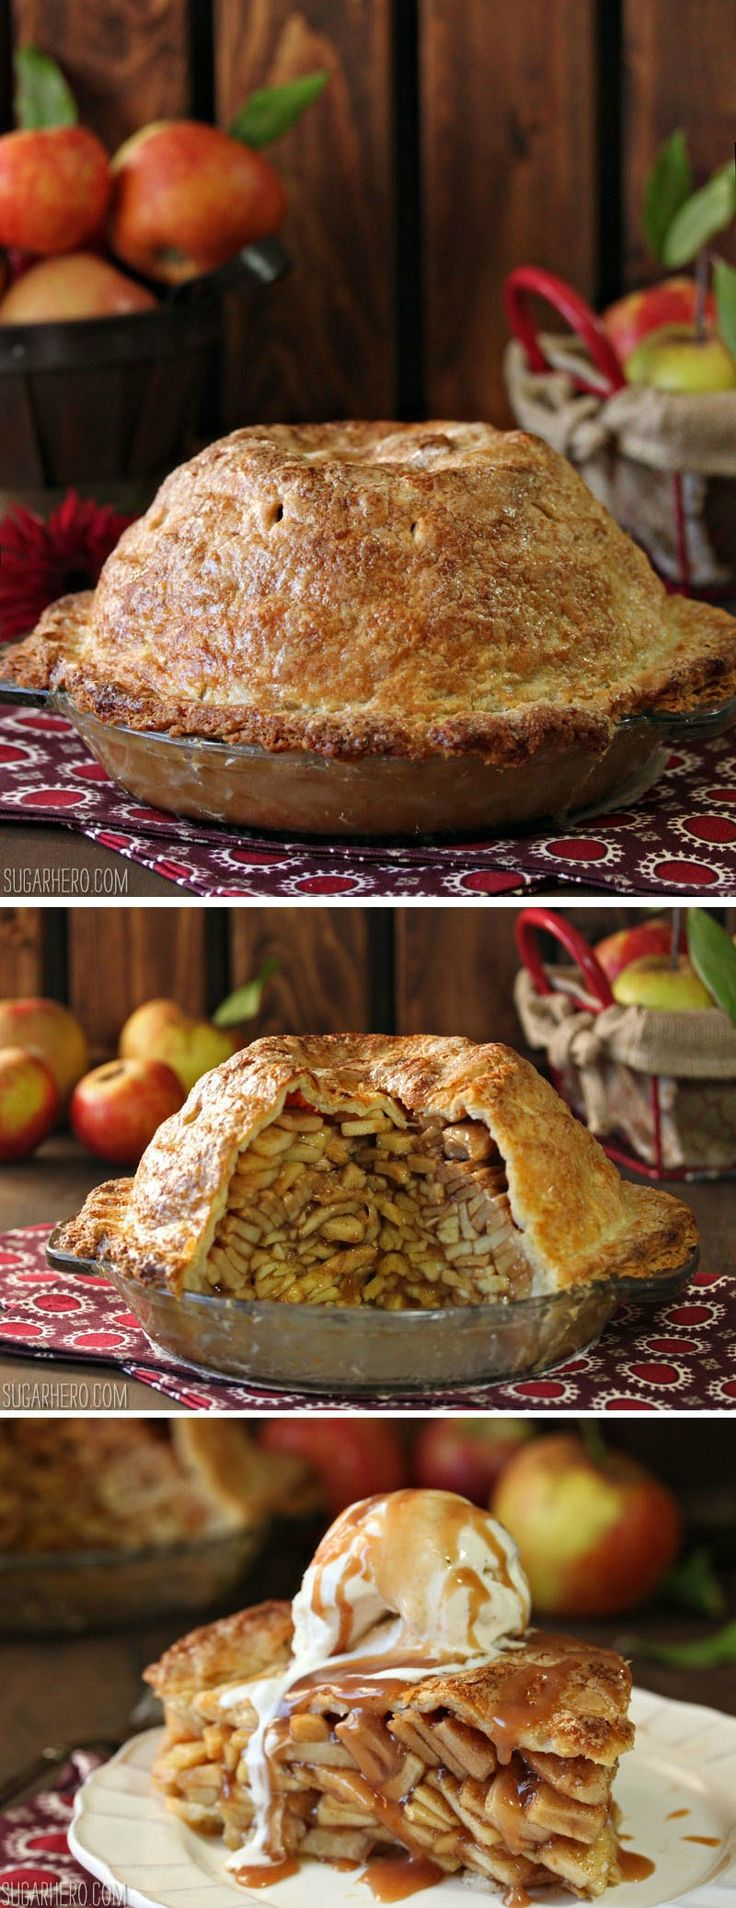 Mile High Apple Pie - the most epic apple pie ever! | From SugarHero ...